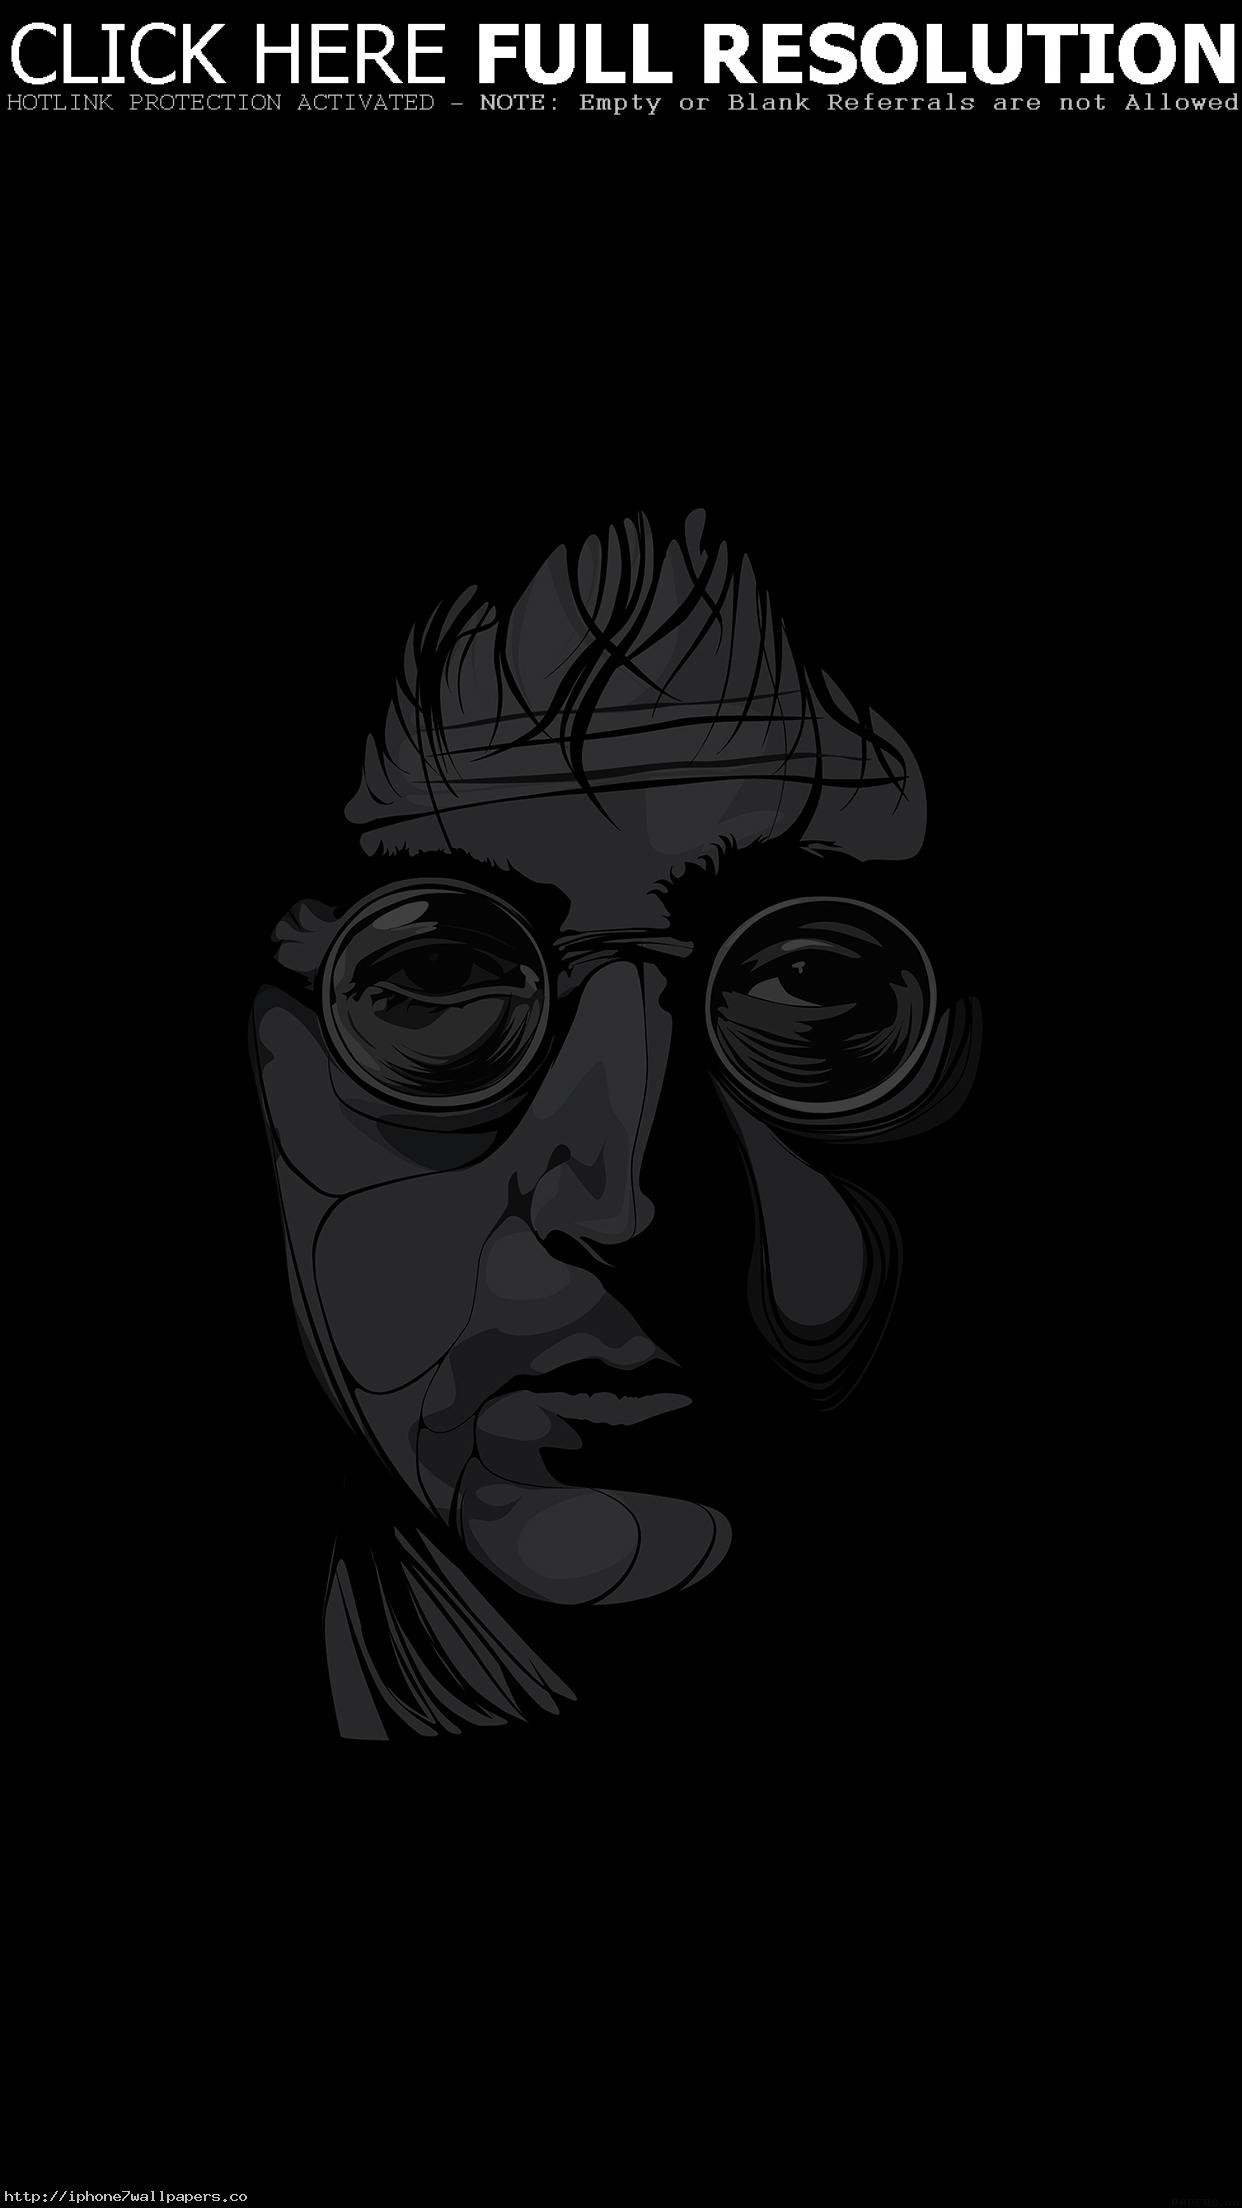 … john lennon il art music android wallpaper android hd wallpapers …